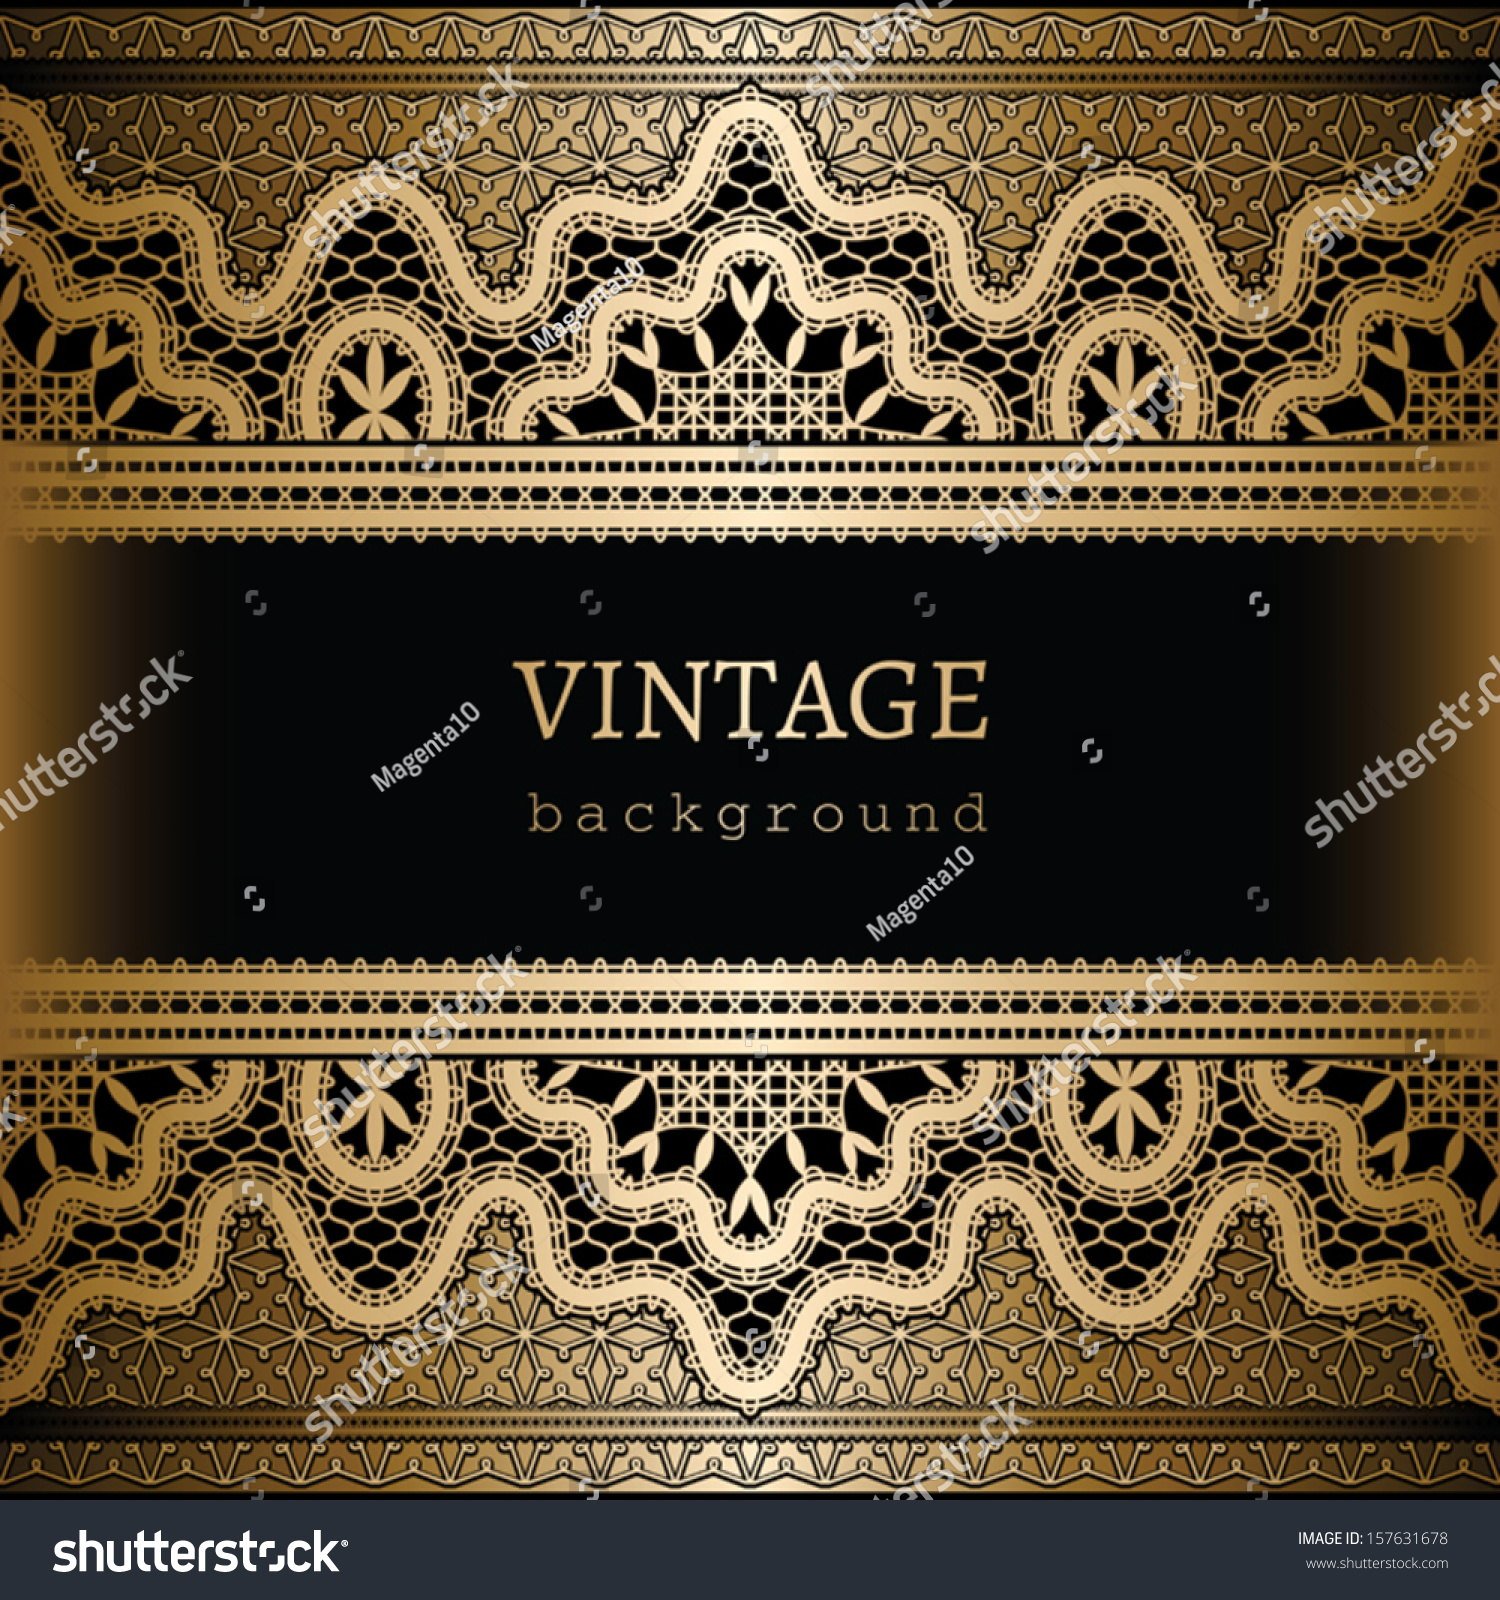 7f5ed621a8 Vintage Gold Background Ornamental Vector Frame Stock Vector ...